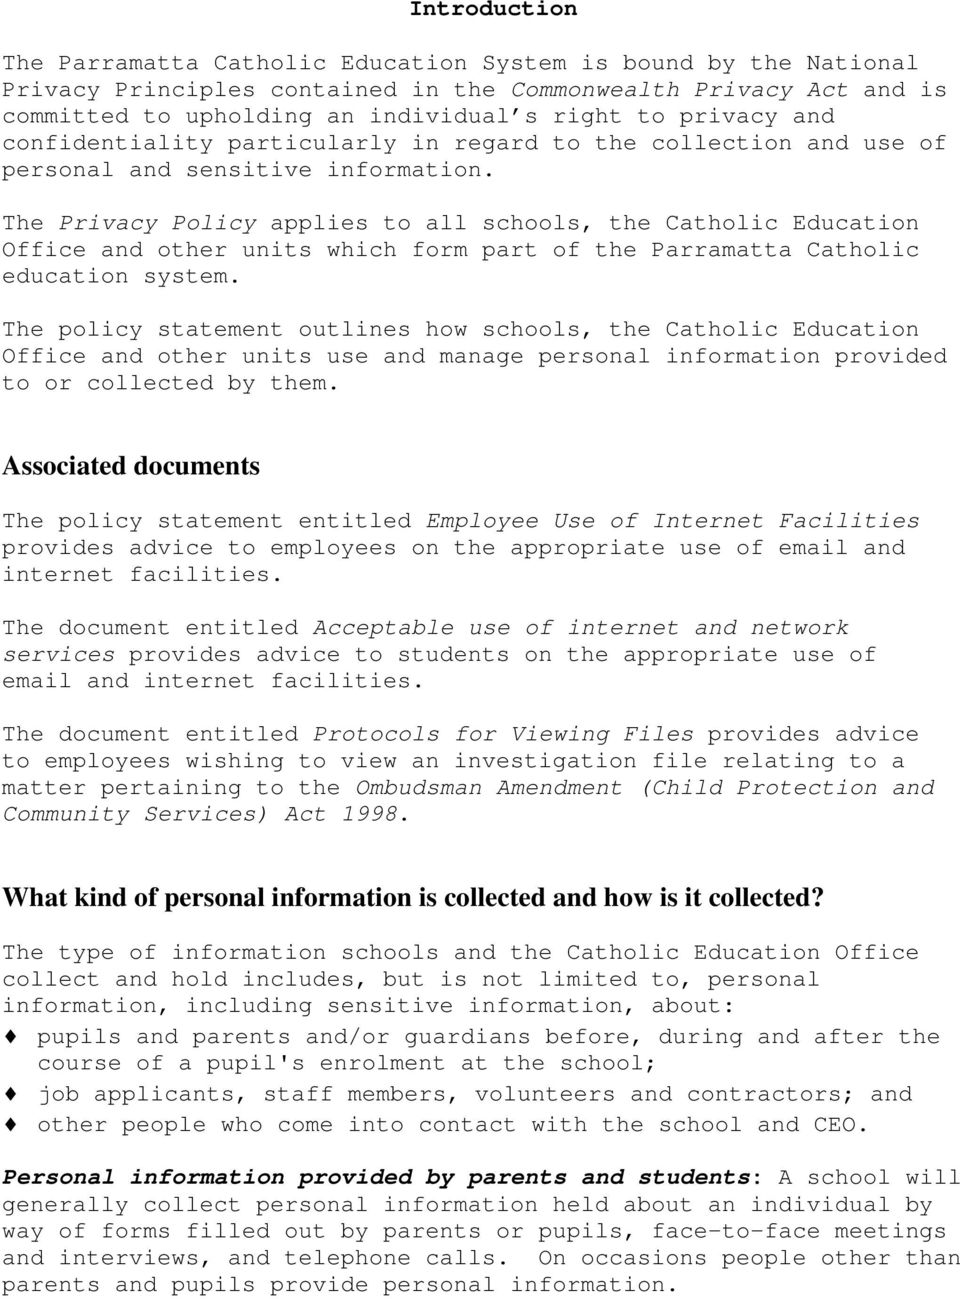 The Privacy Policy applies to all schools, the Catholic Education Office and other units which form part of the Parramatta Catholic education system.